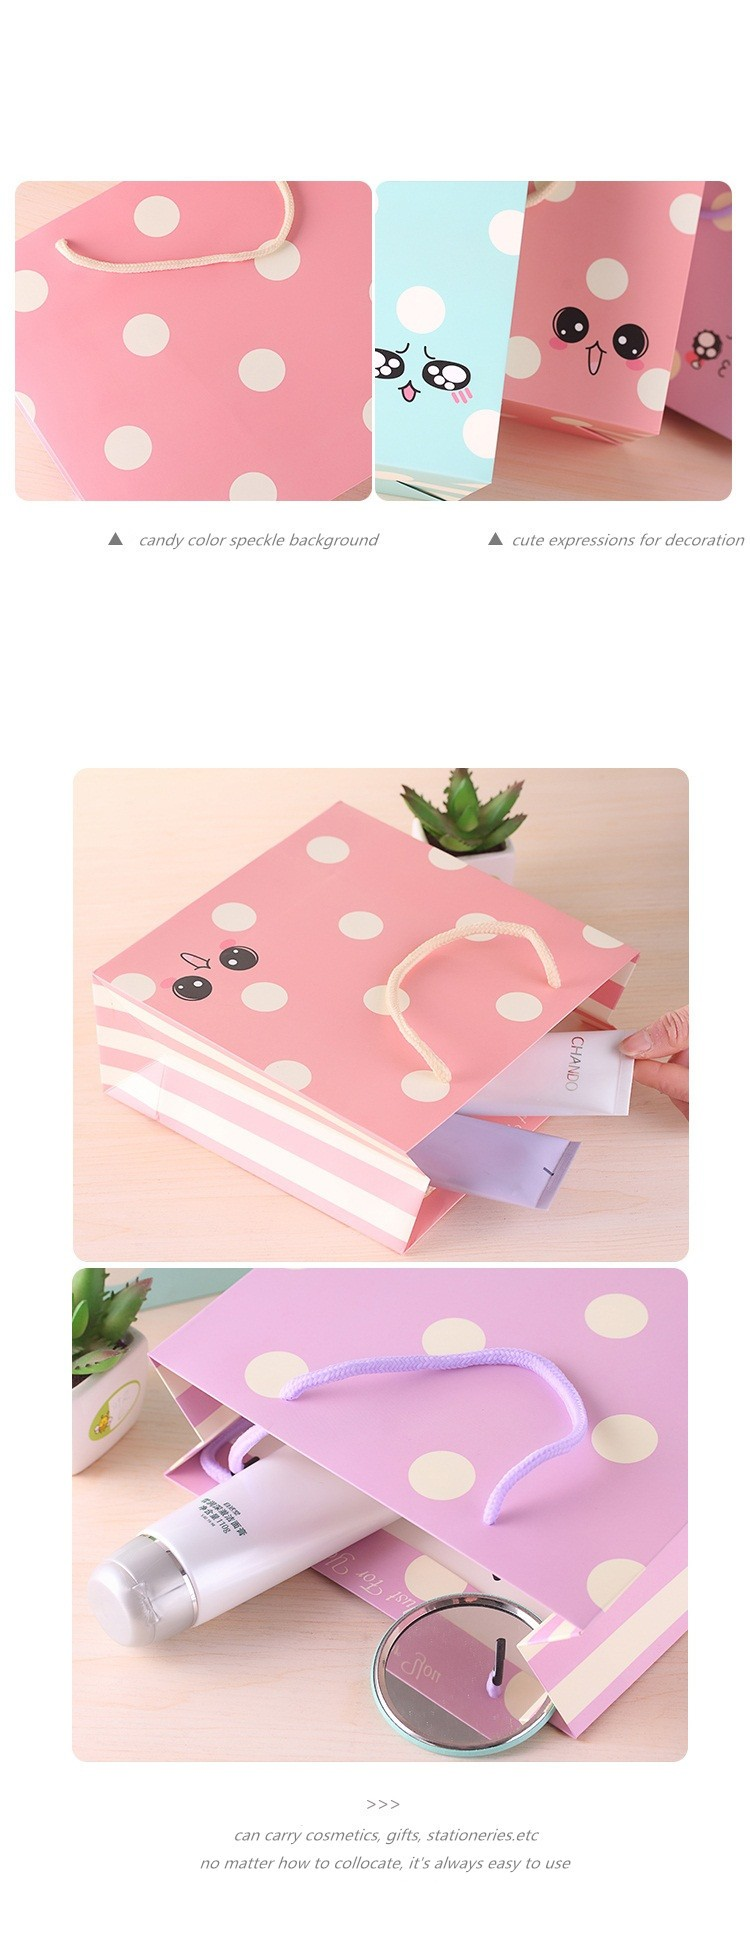 Funny Expressions Speckle Cosmetic Packaging Bag Paper Gift Carry Bag Buy Paper Carry Bag Cosmetic Bag Paper Gift Bag Product On Alibaba Com